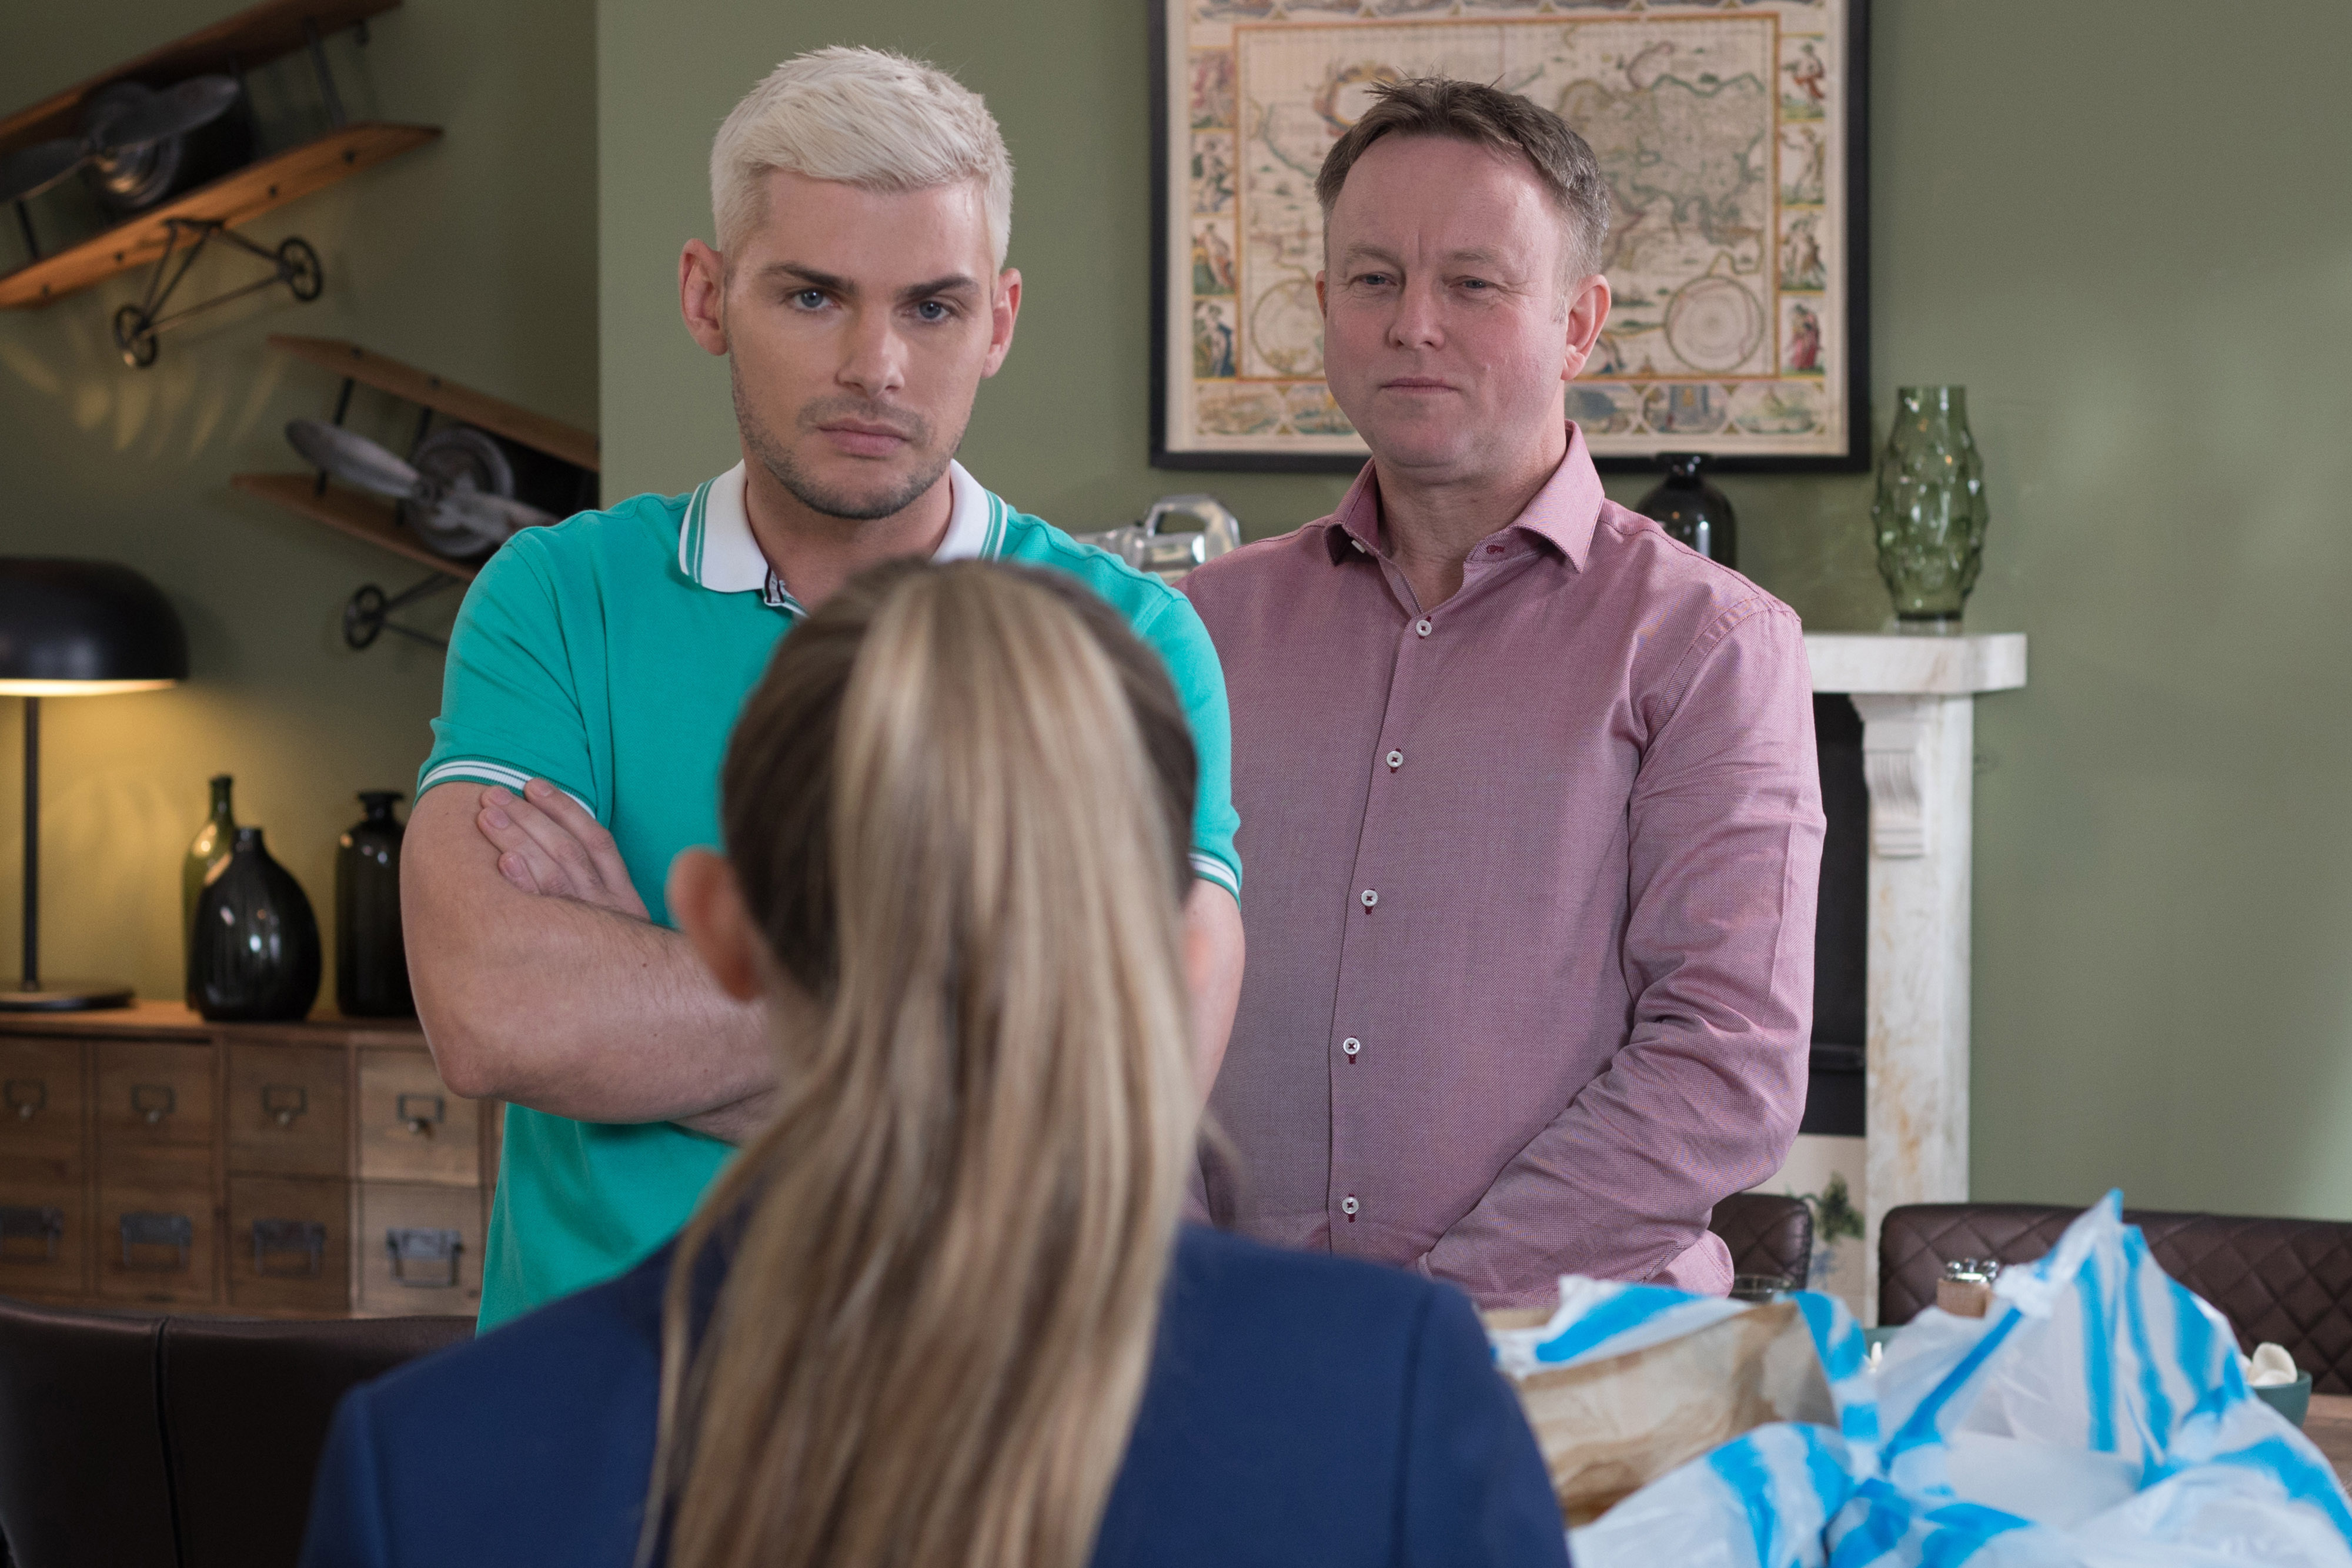 Hollyoaks spoilers: Leah is disgusted by Ste's racism as he joins far-right group